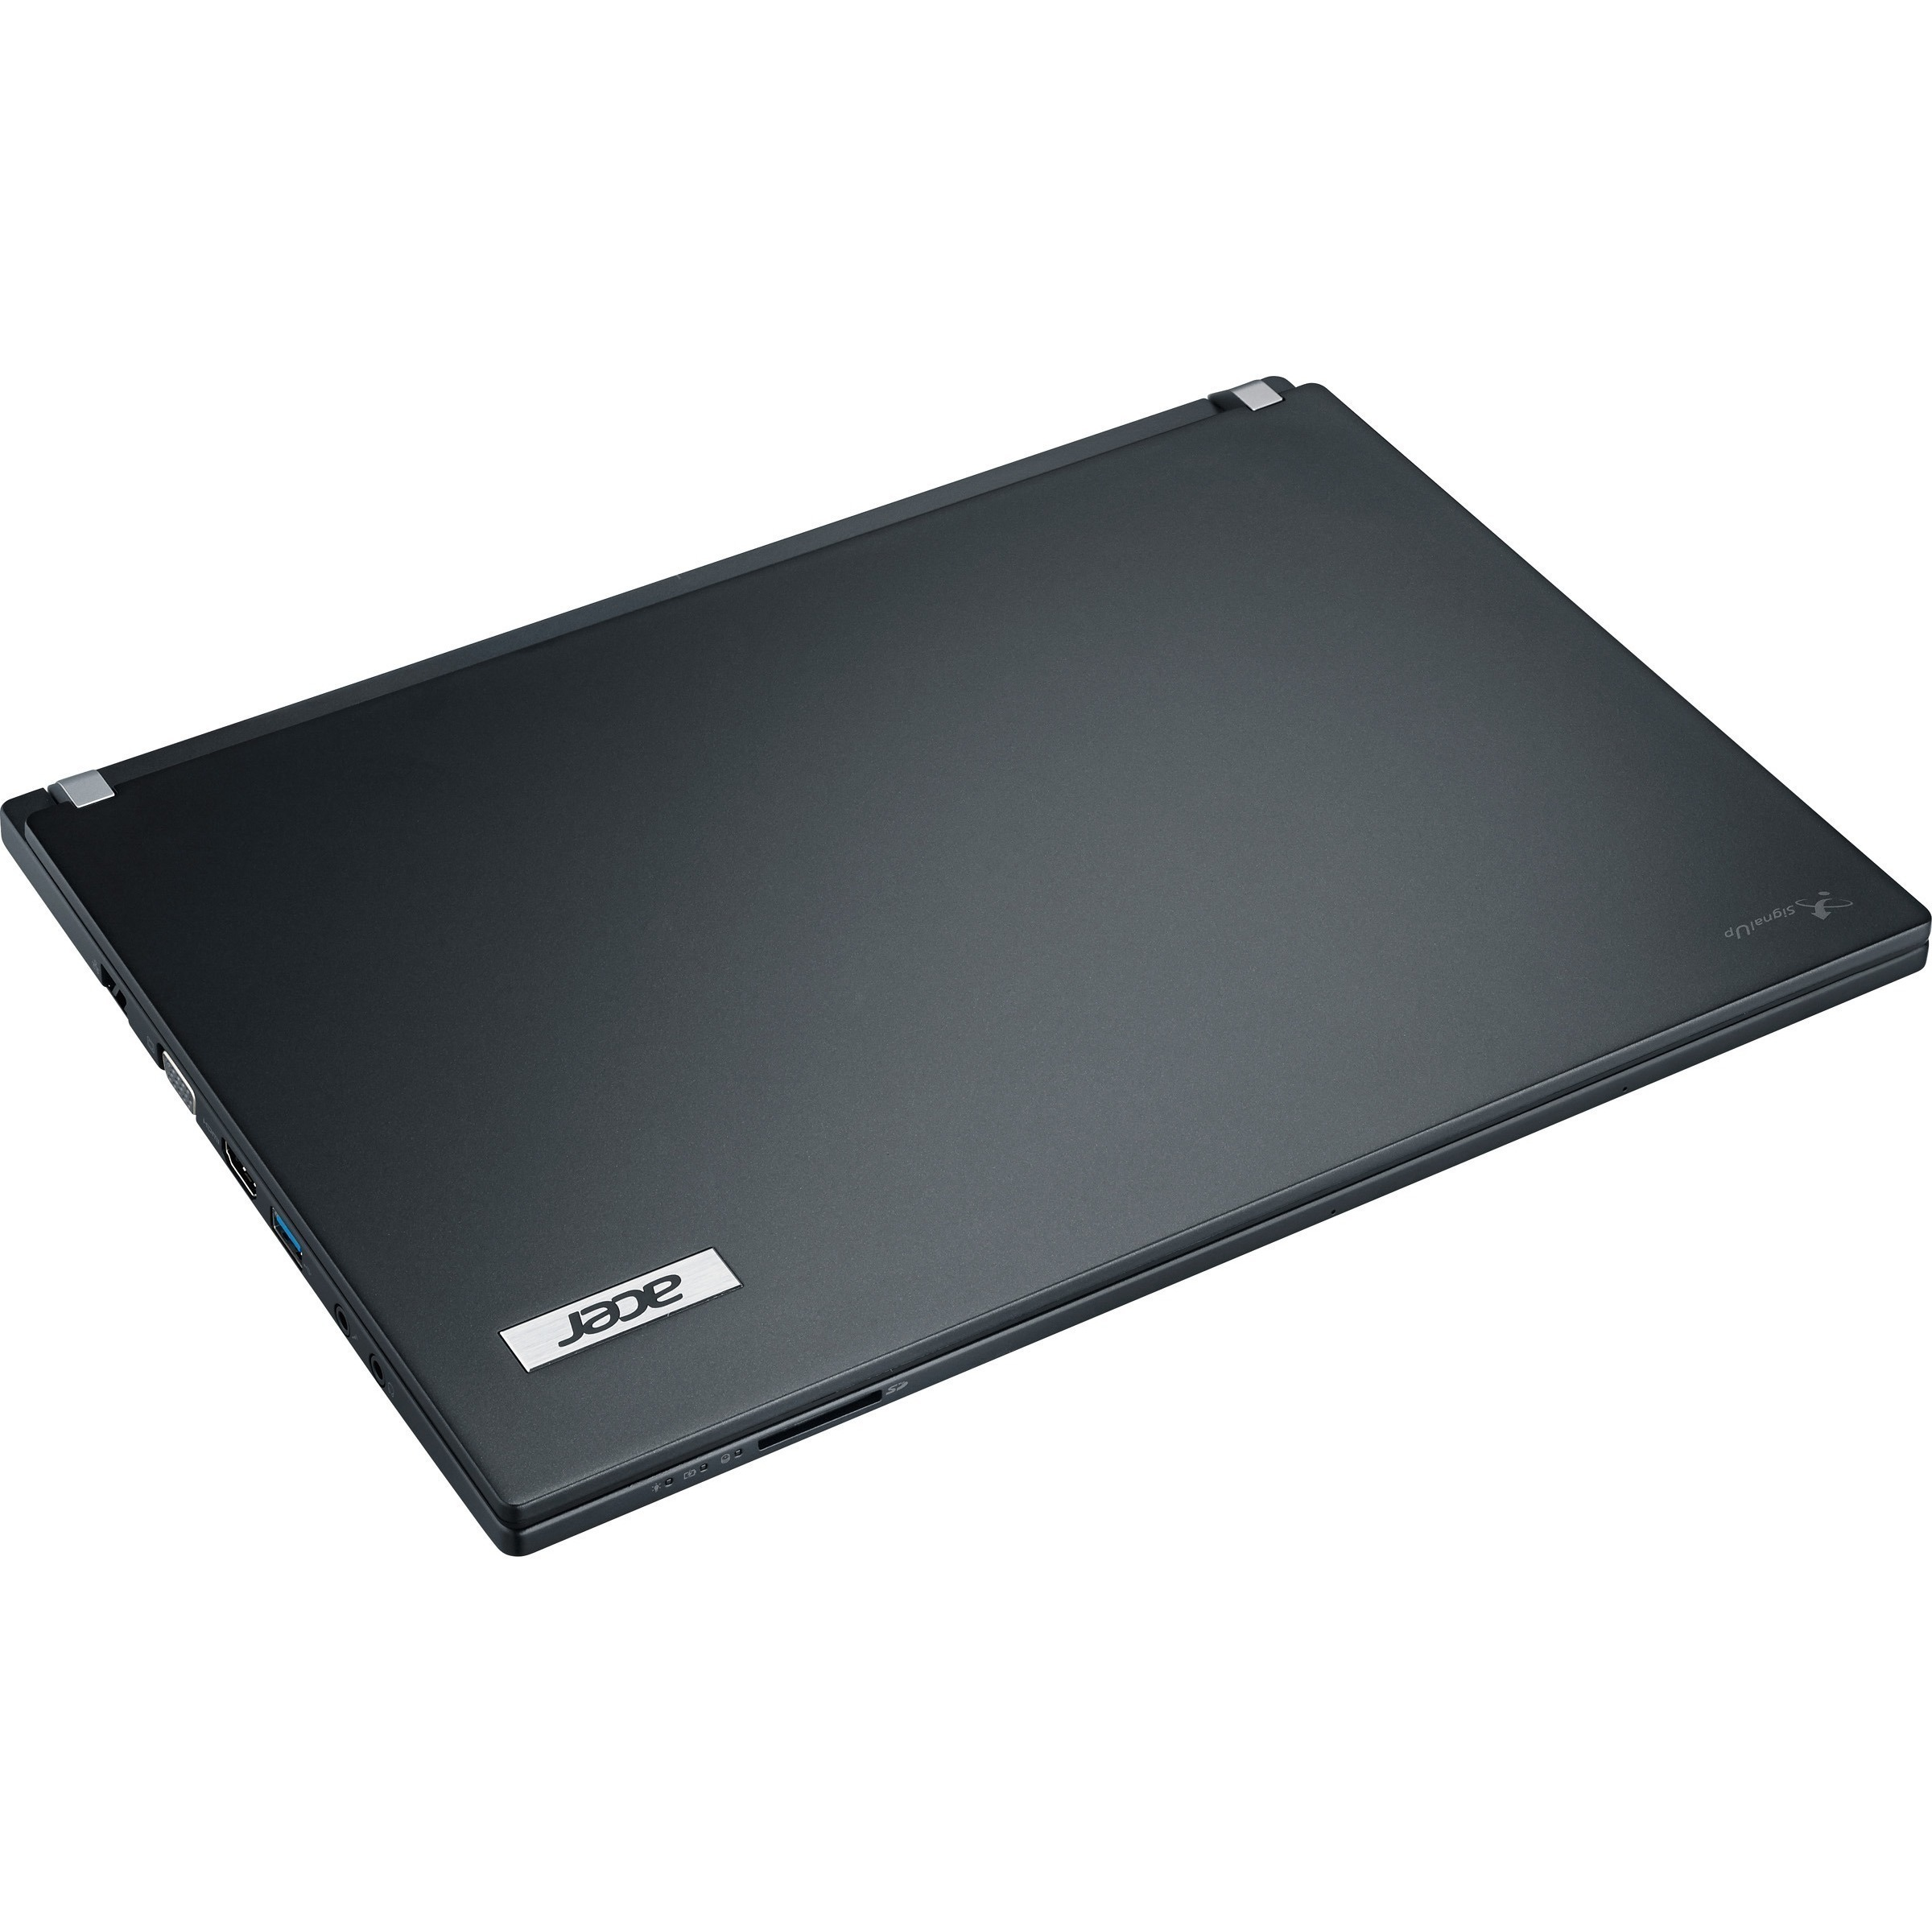 Acer TravelMate P645-S TMP645-S-78G7 35.6 cm 14inch LED In-plane Switching IPS Technology Notebook - Intel Core i7 i7-5500U Dual-core 2 Core 2.40 GHz - 4 GB DDR